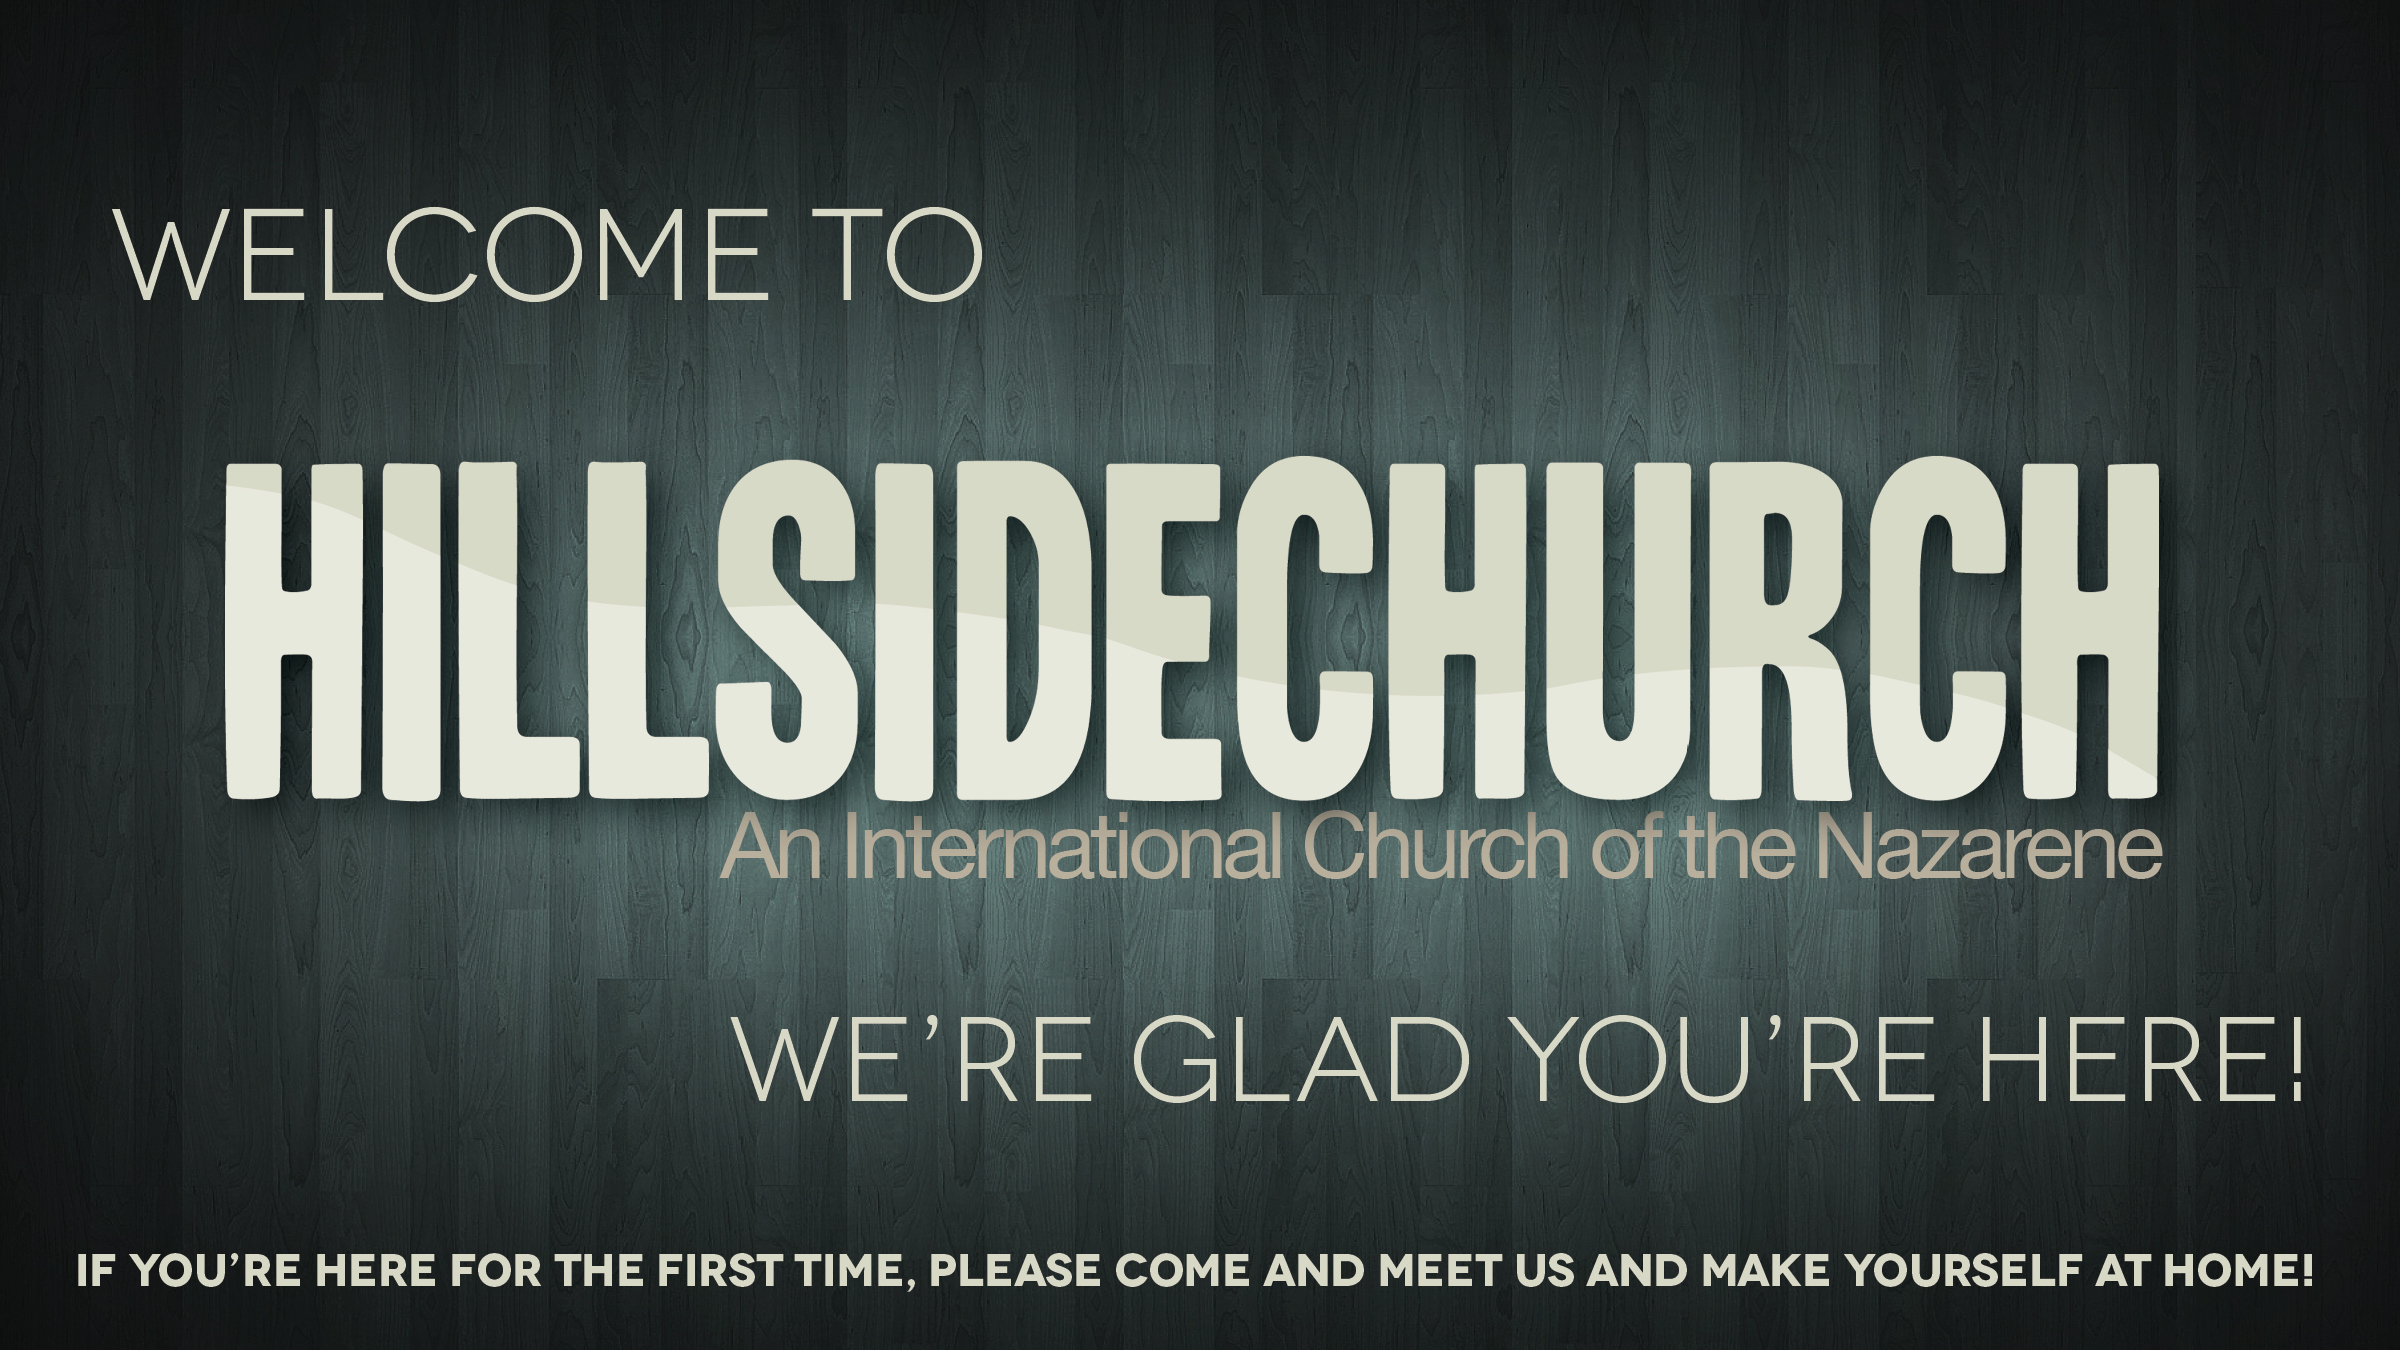 160517 Hillside Lobby Welcome Screen 1.jpg